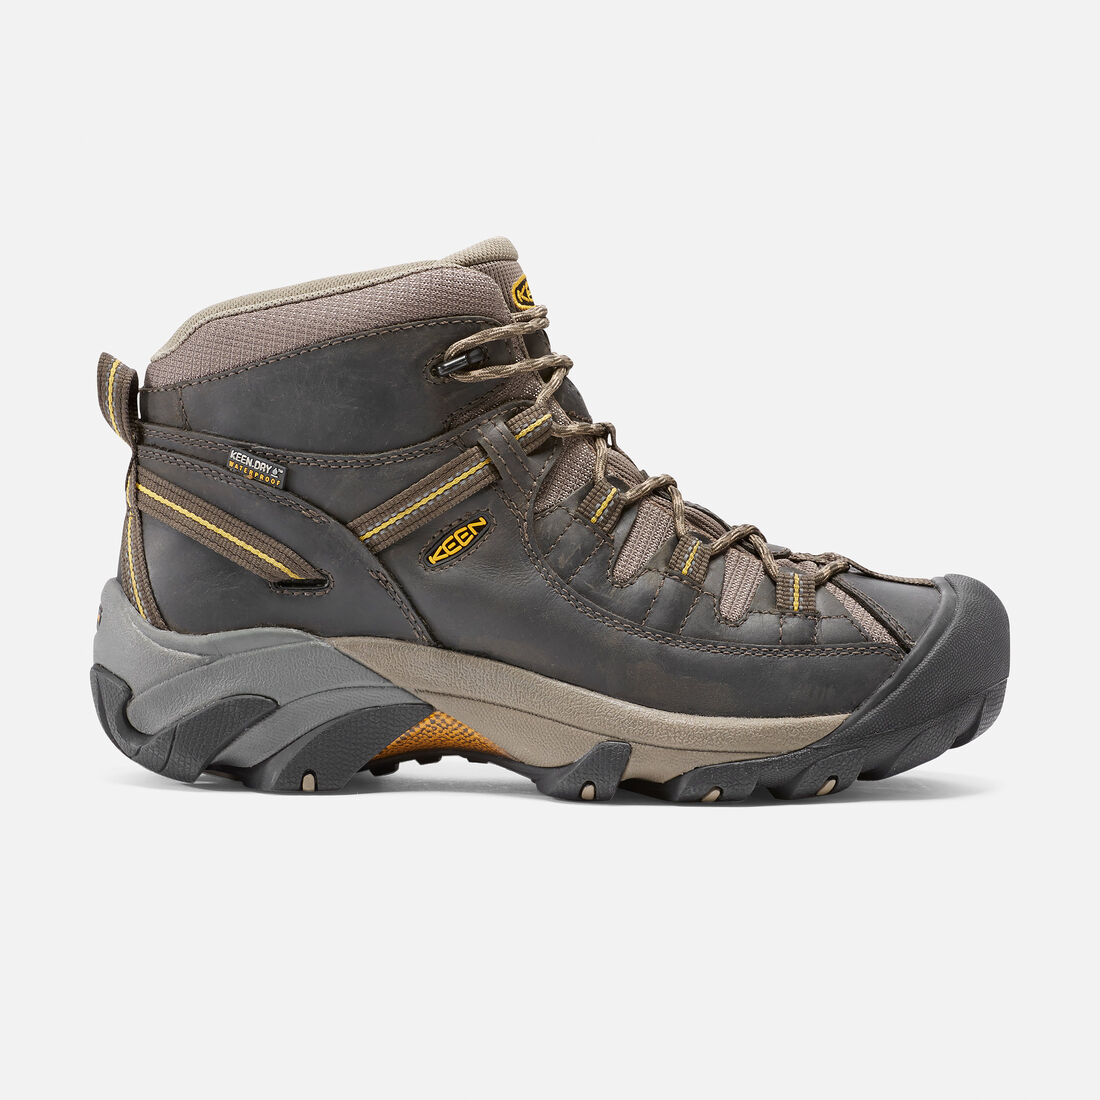 MEN'S TARGHEE II WATERPROOF  MID HIKING BOOTS in Black Olive/Yellow - large view.